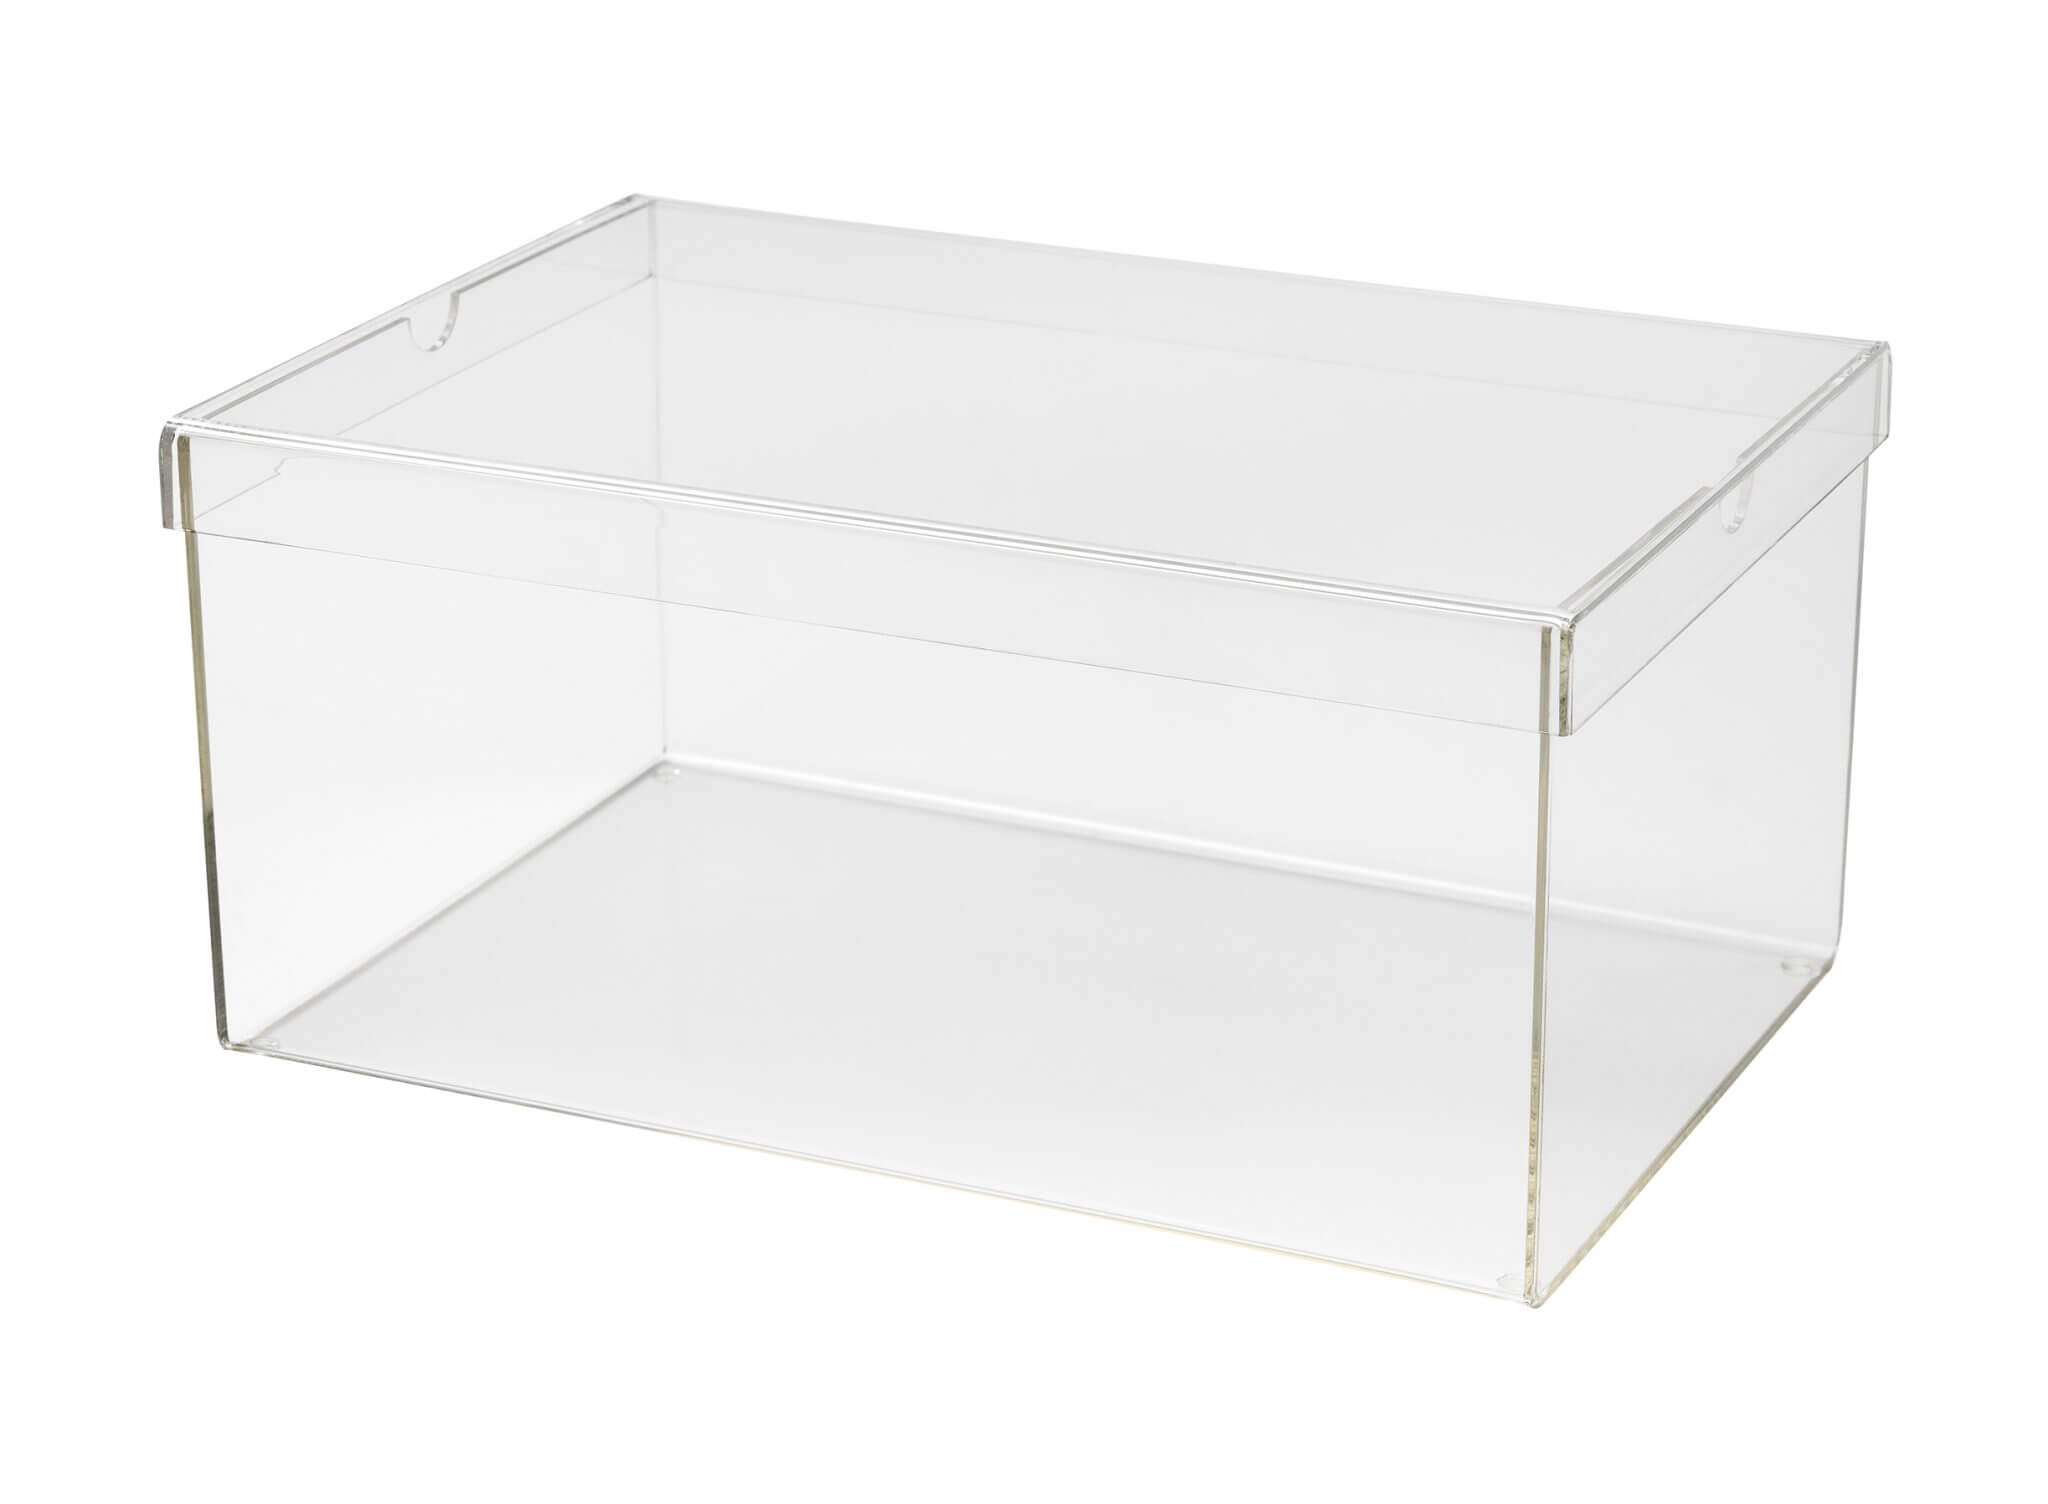 SPANST shoe box - $29.99- IKEA